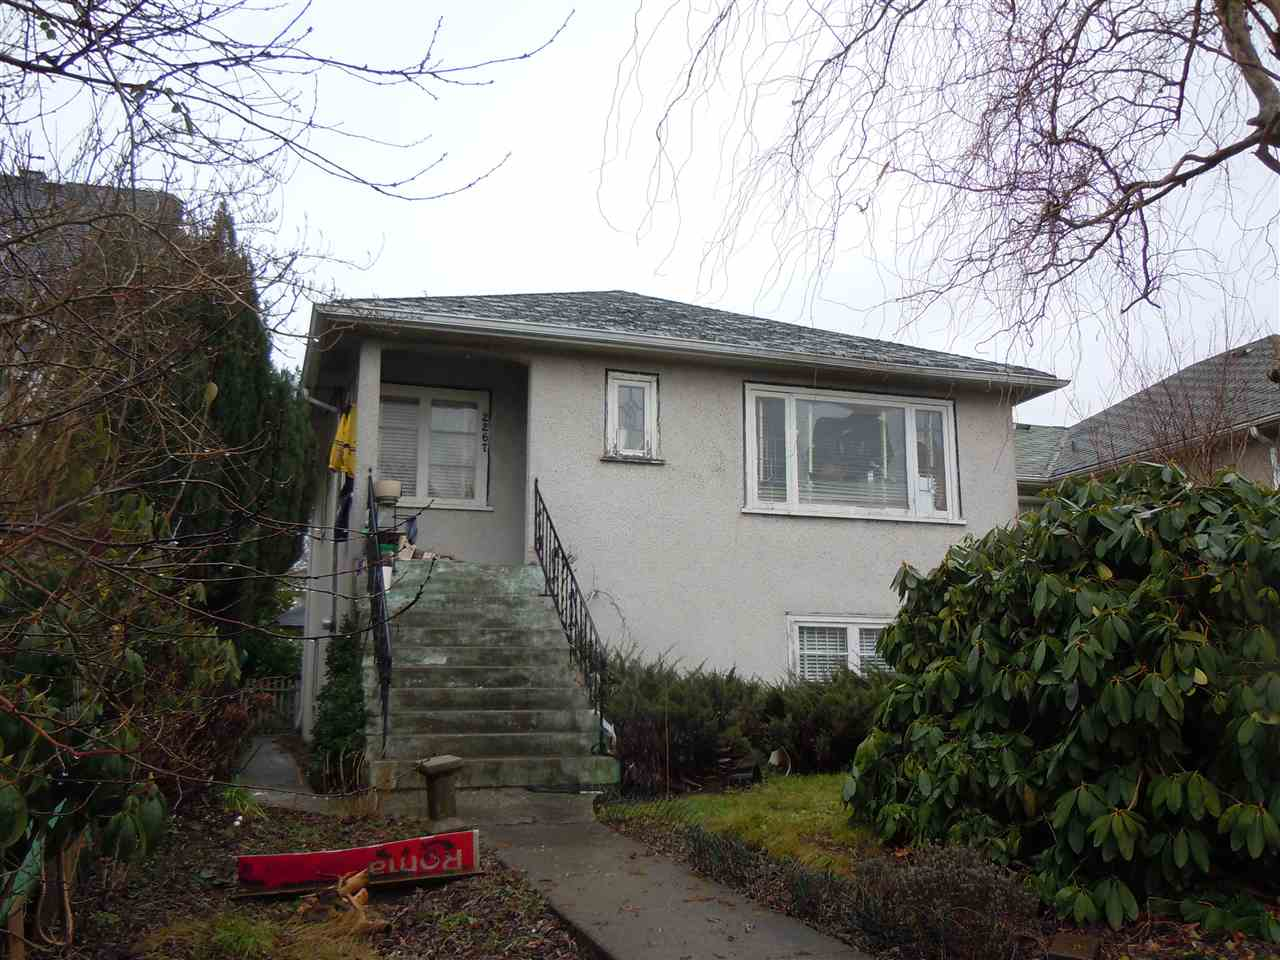 Main Photo: 2267 E BROADWAY in Vancouver: Grandview VE House for sale (Vancouver East)  : MLS® # R2023615